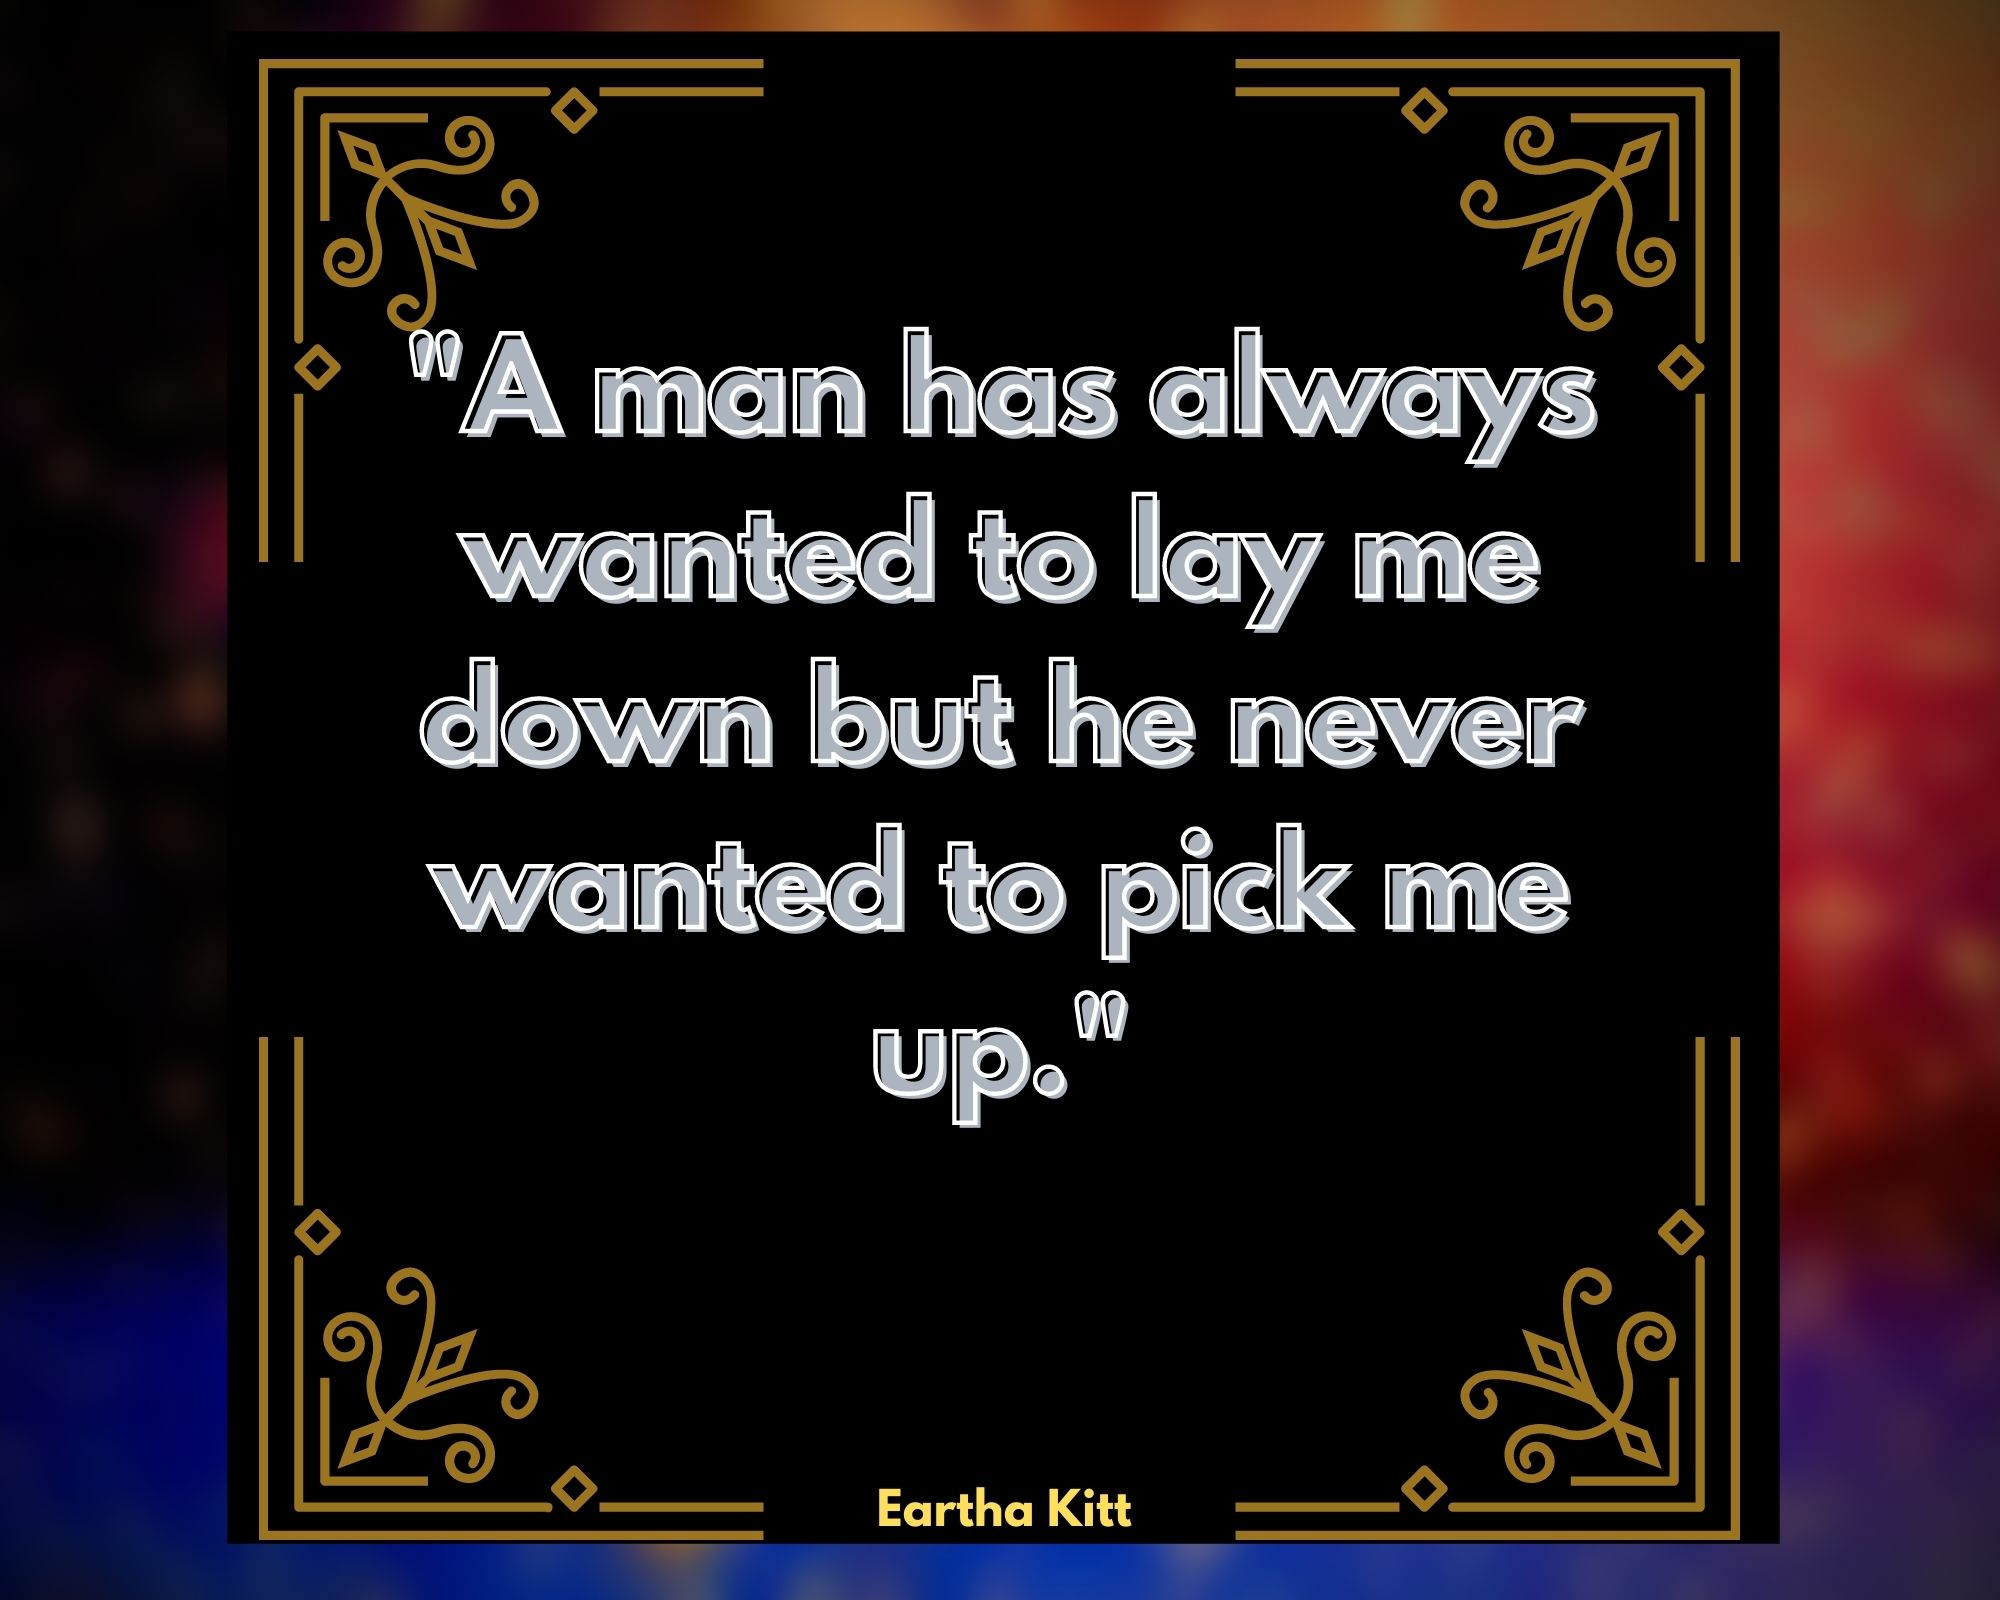 Quotes by Eartha Kitt